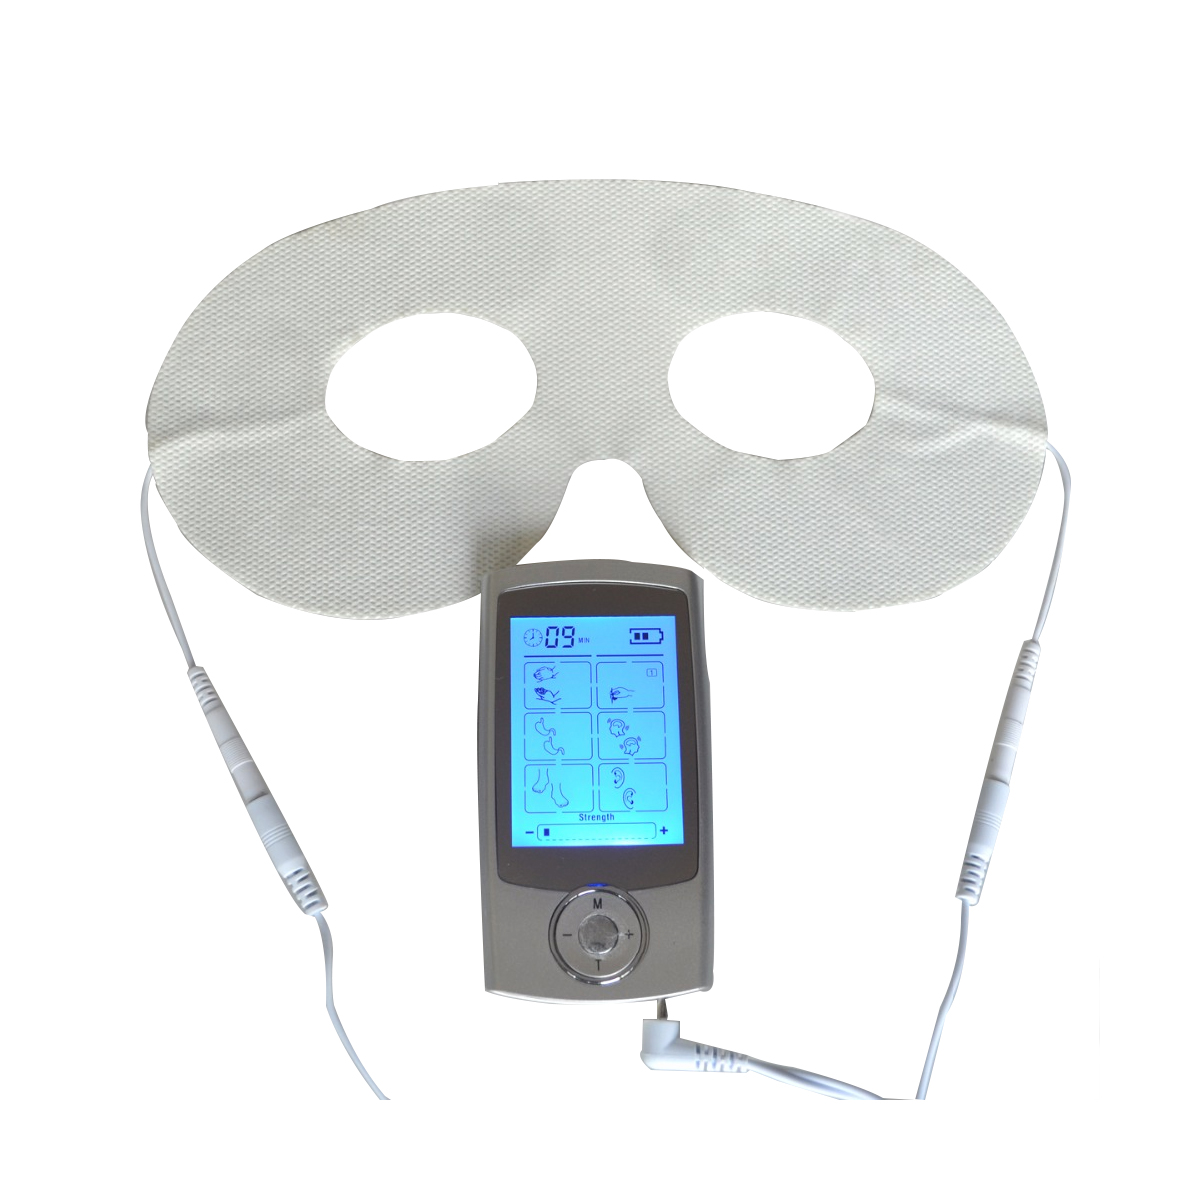 Tens Digital Therapy Massager Acupuncture Pulse Electrode Unit Muscle Stimulator Body Relaxation With Conductive Eye Mask 4 electrode tens acupuncture electric therapy massageador machine pulse body slimming sculptor massager apparatus body care